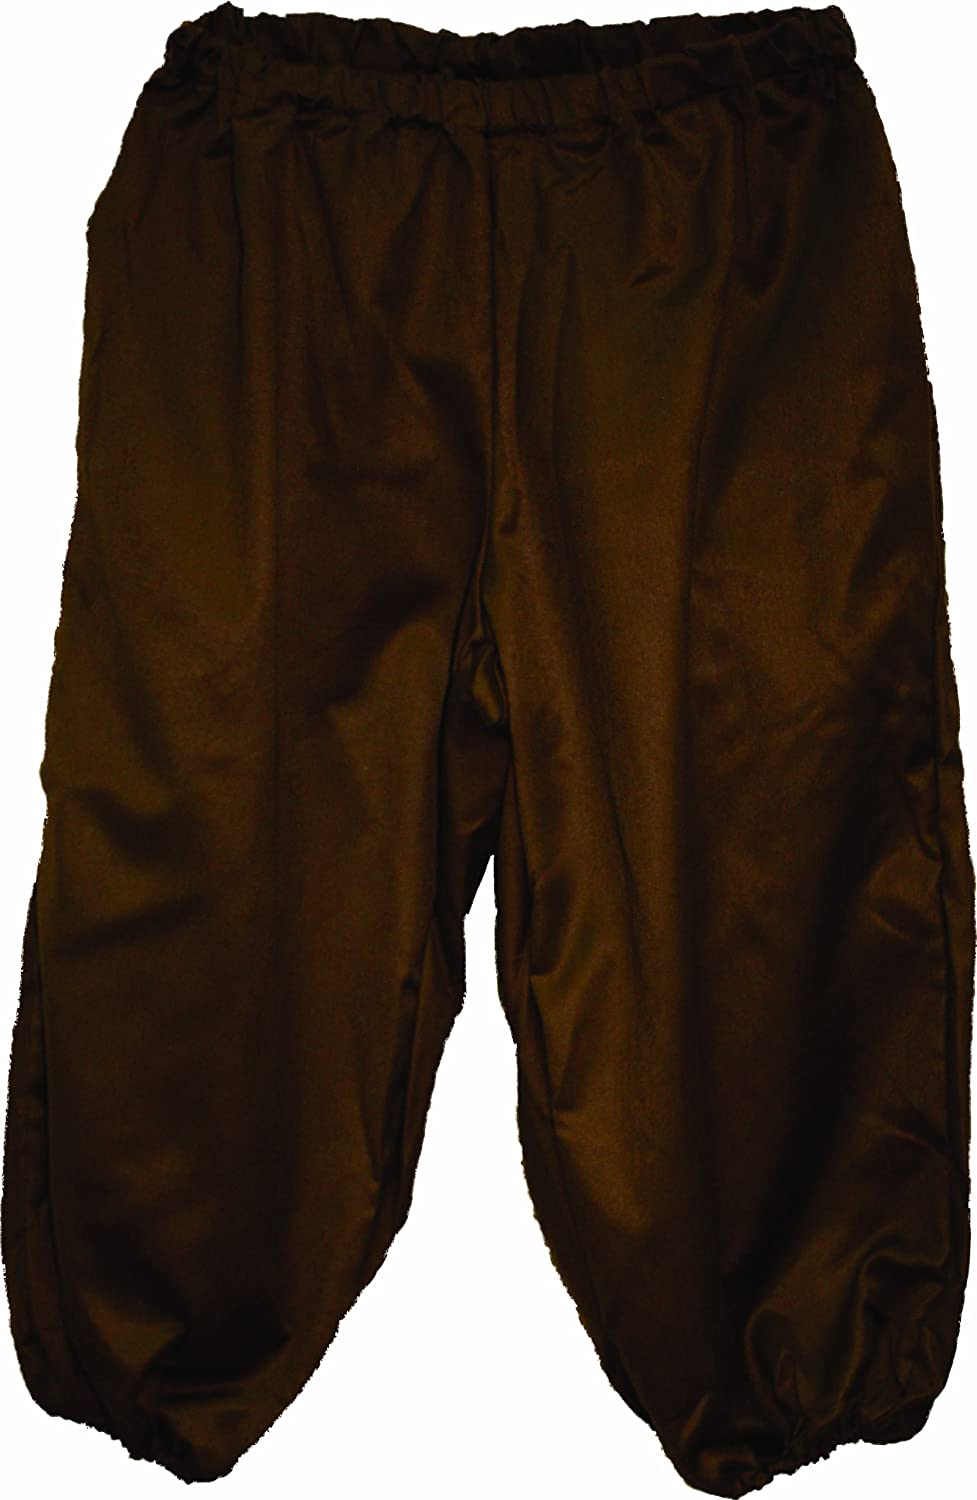 Deluxe Adult Costumes - Men's brown pirate knickers, pirate breeches, pirate pants, pirate trousers by Alexanders Costumes